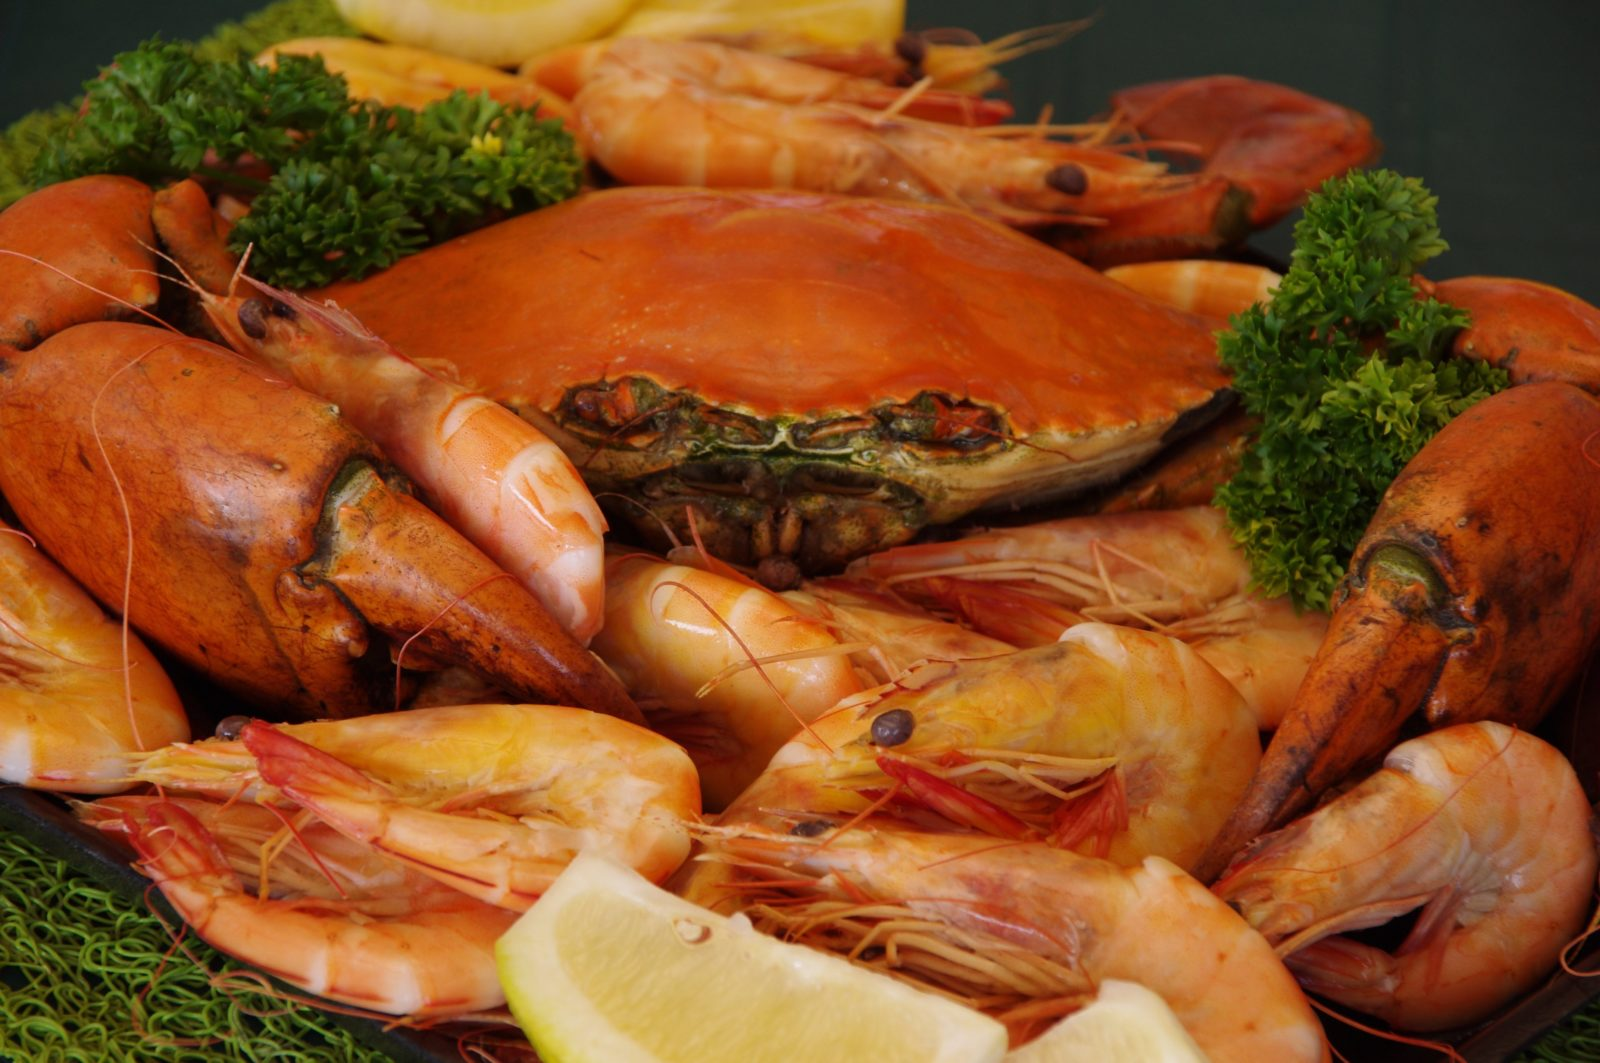 Specialising in local fish and seafood